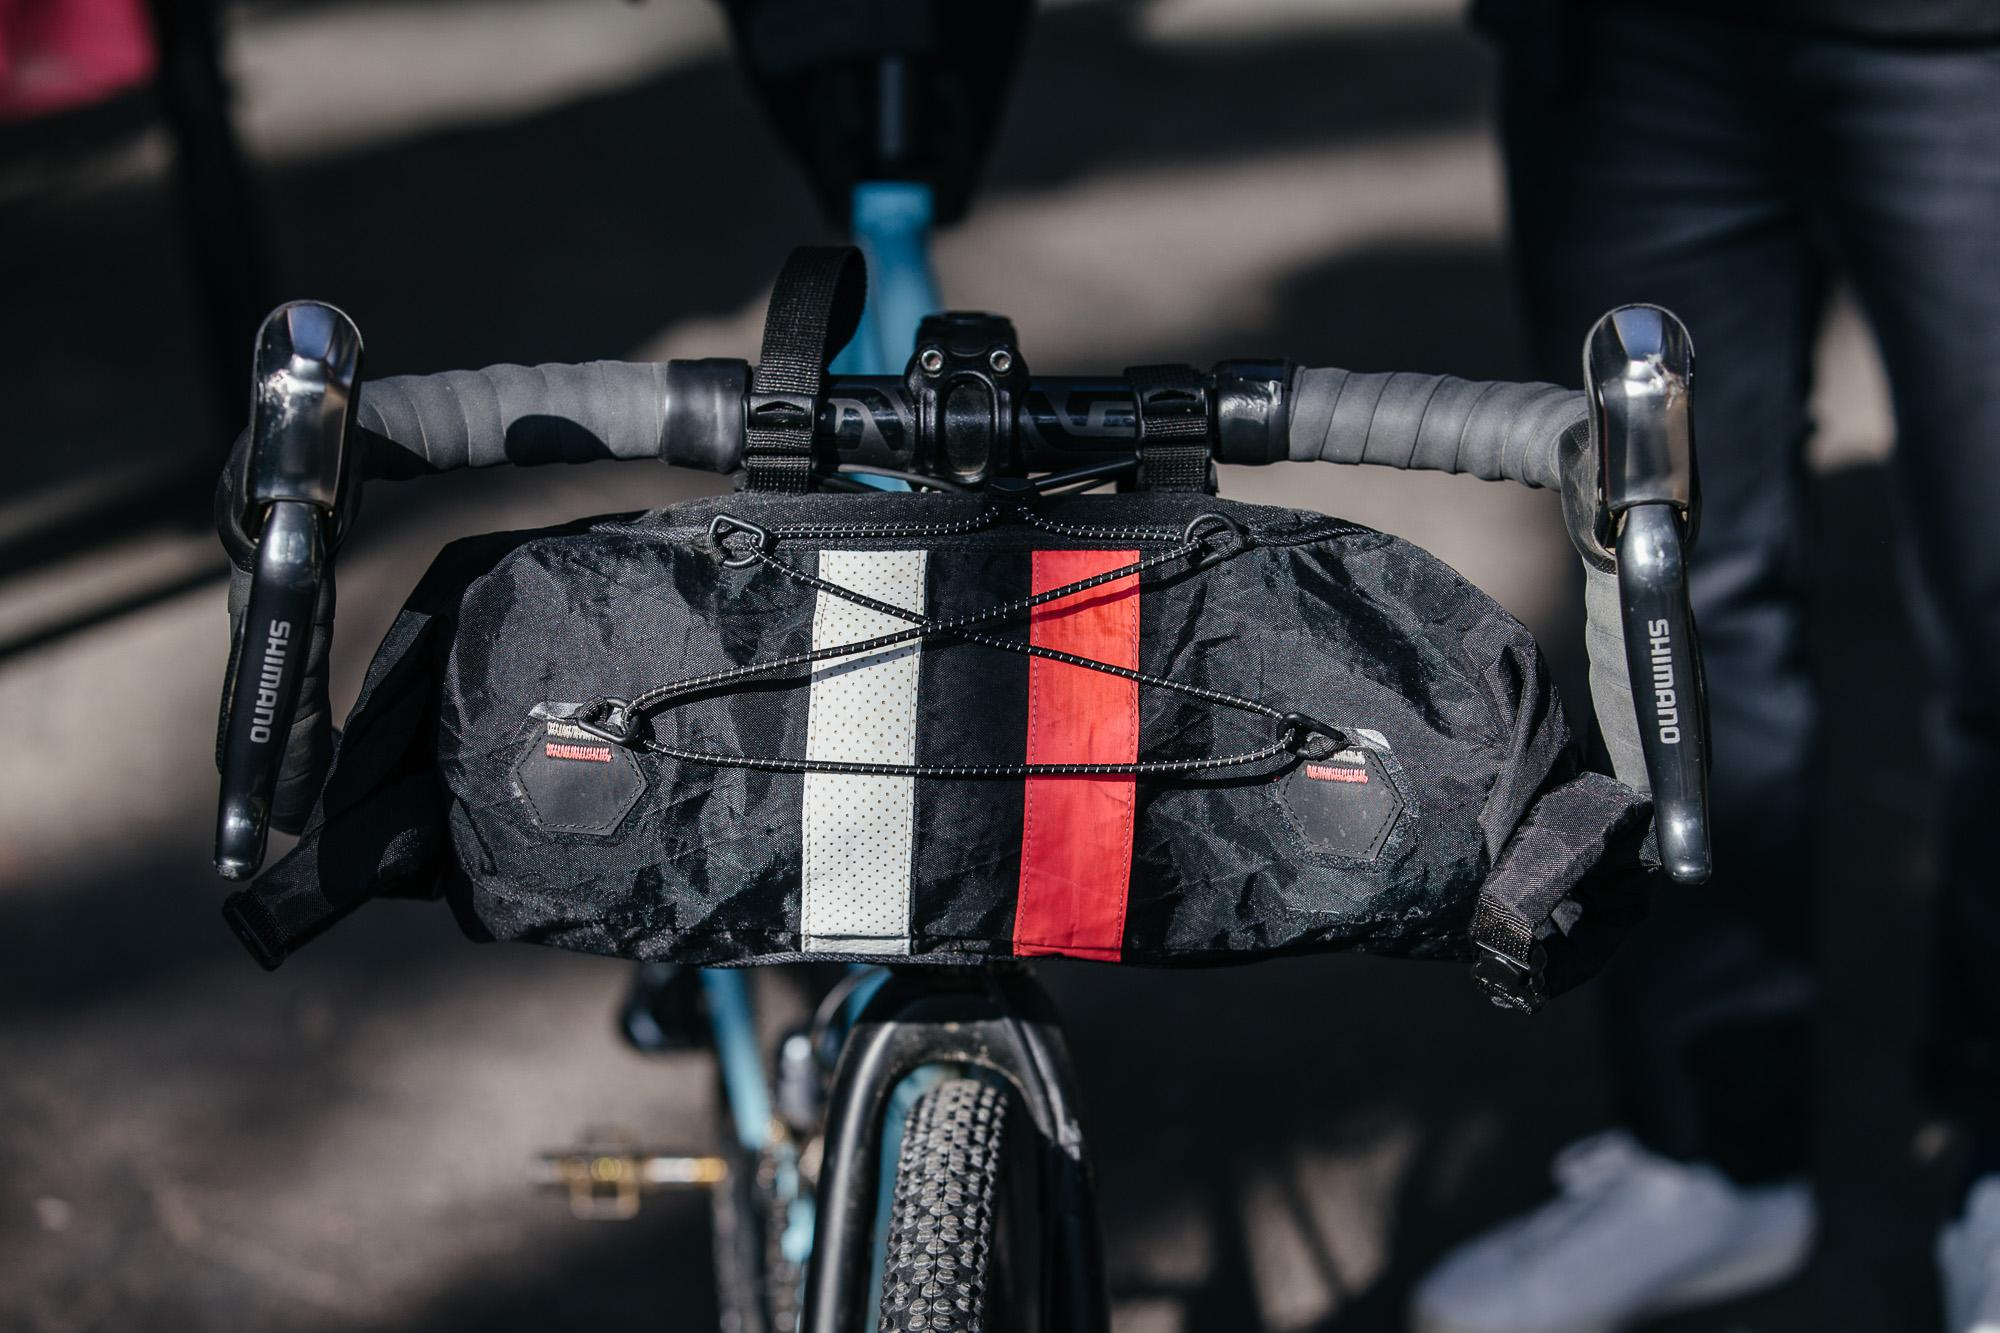 Rapha's new campaign - Pack Light, Travel Far